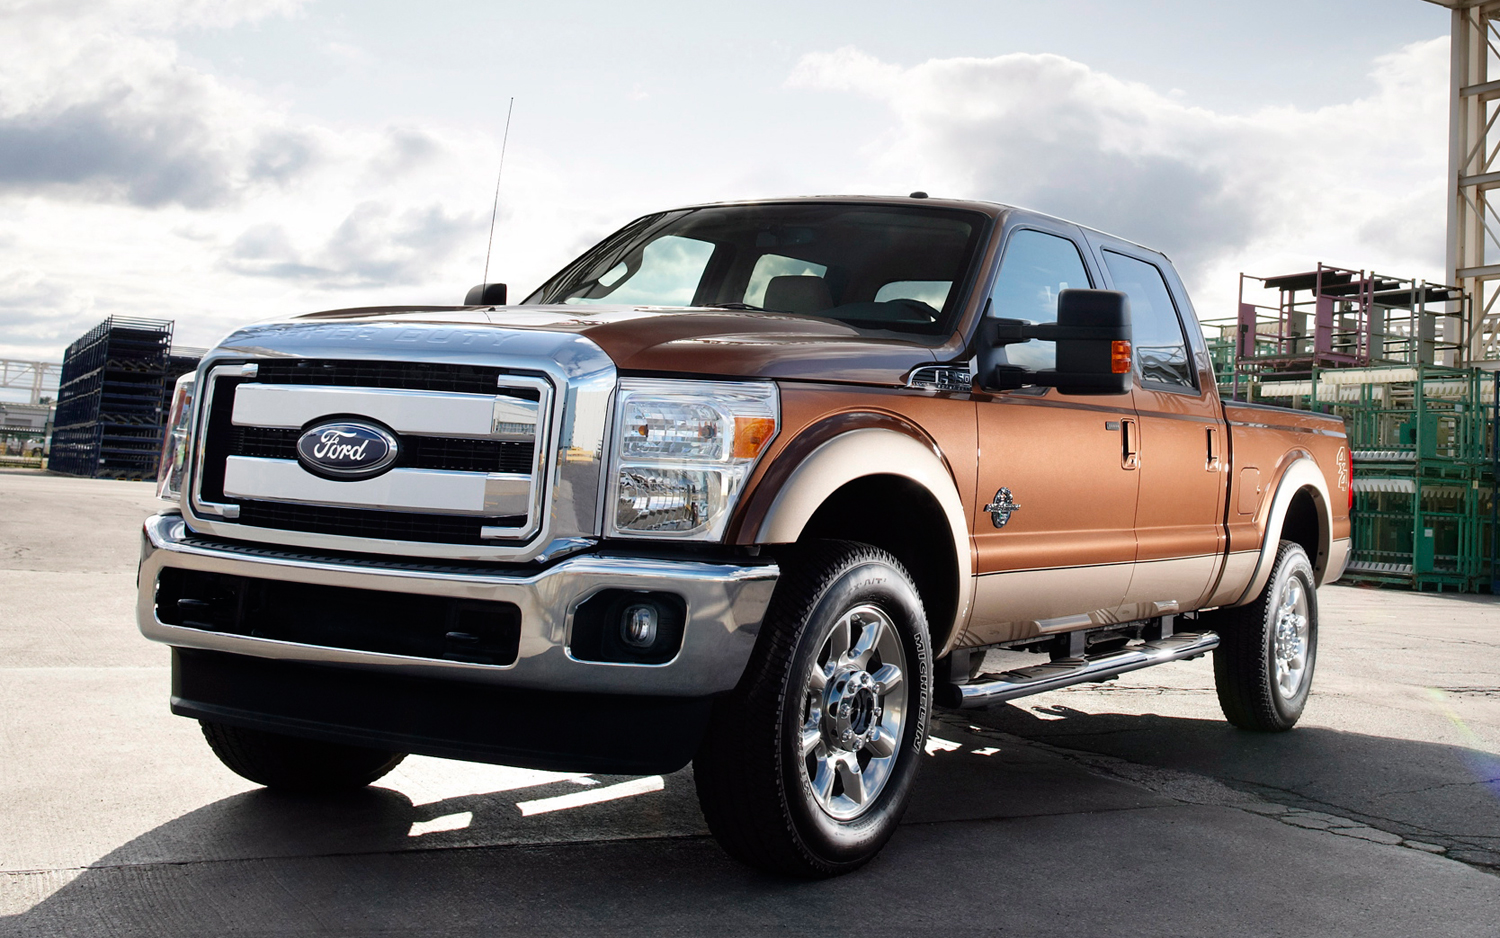 The much waited reveal of the 2017 Ford F-Series Super Duty